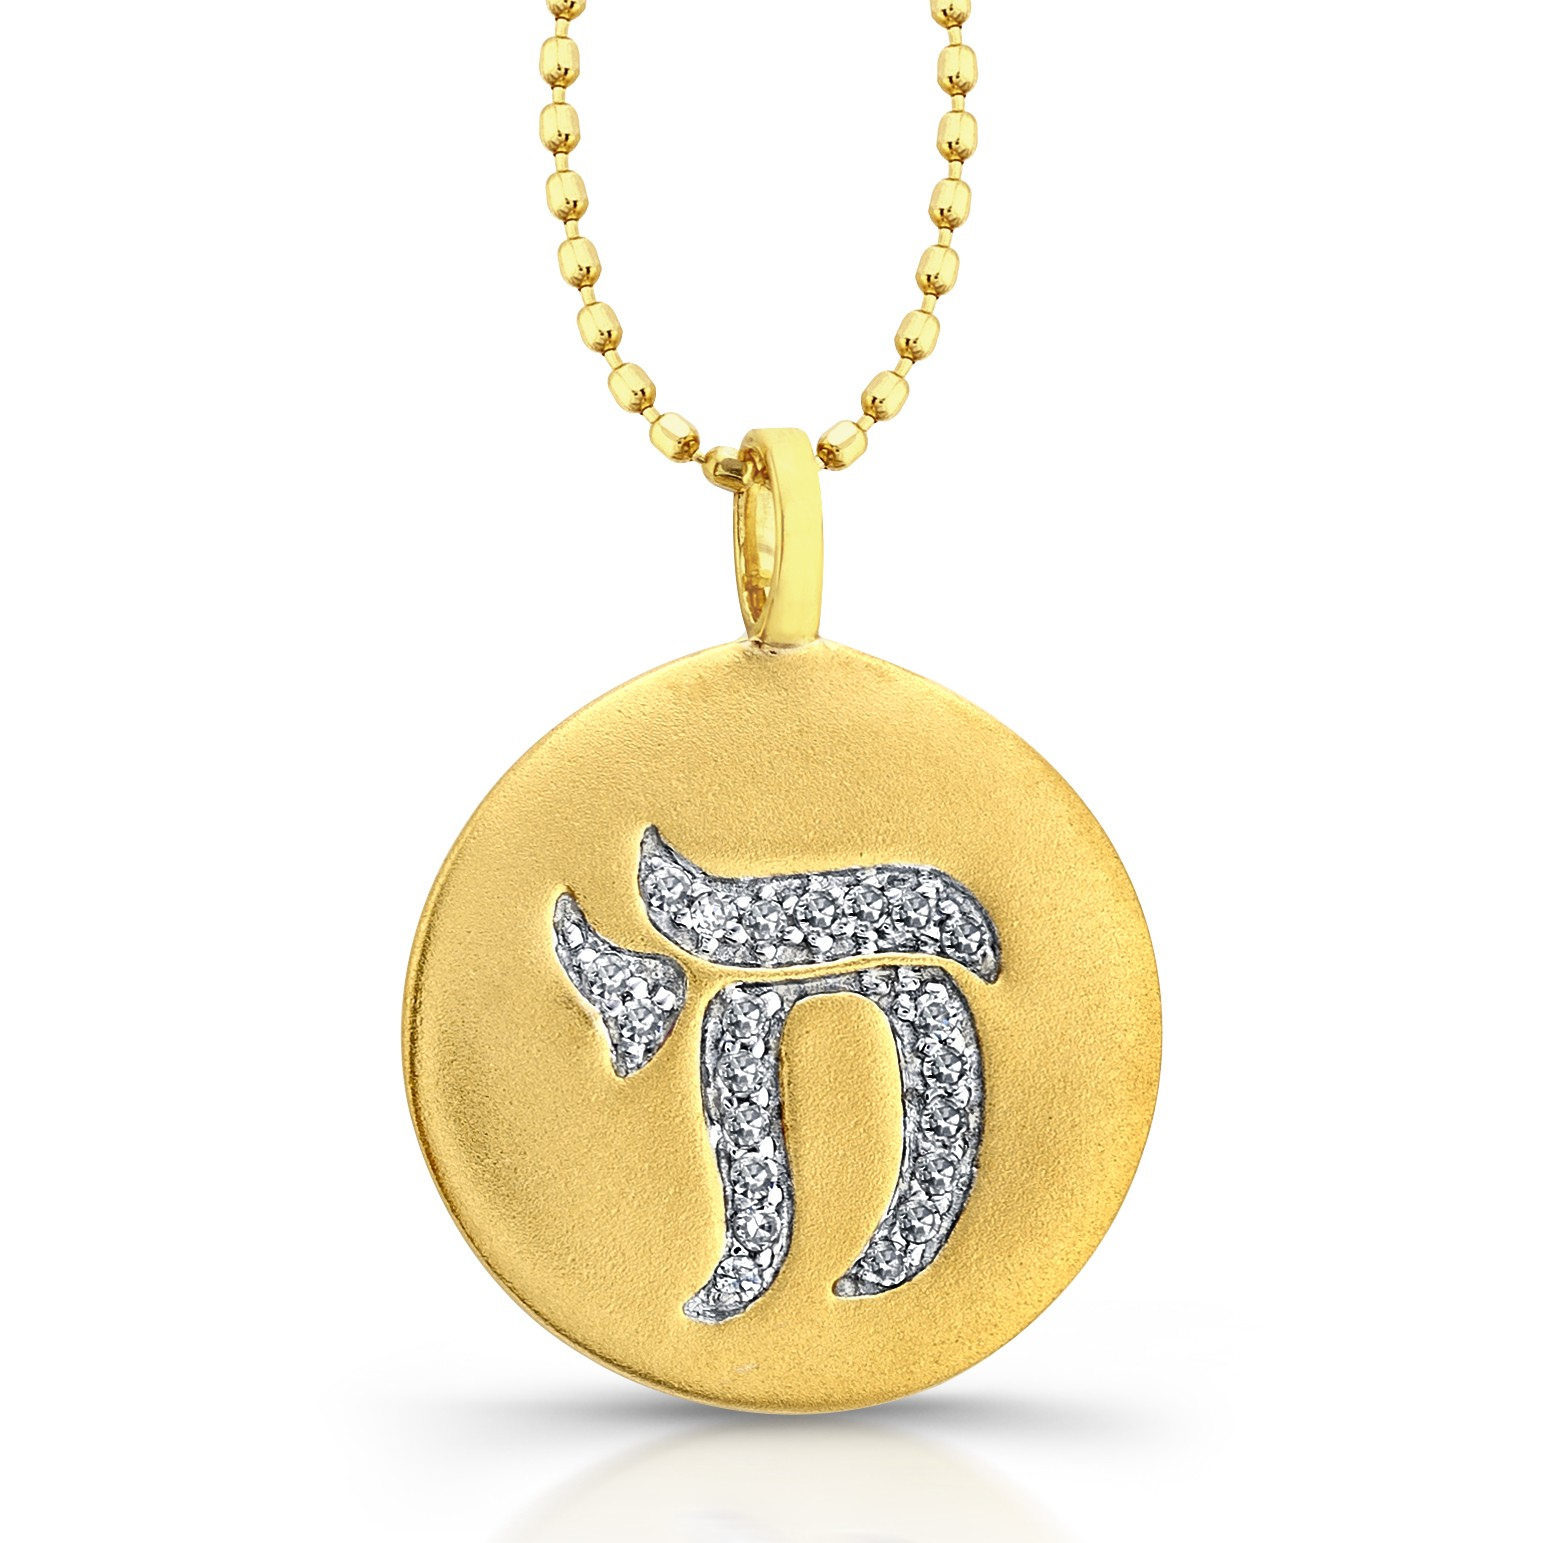 life cutout pendant overstock chai symbol on of over jewelry watches hebrew orders inches shipping free product silver